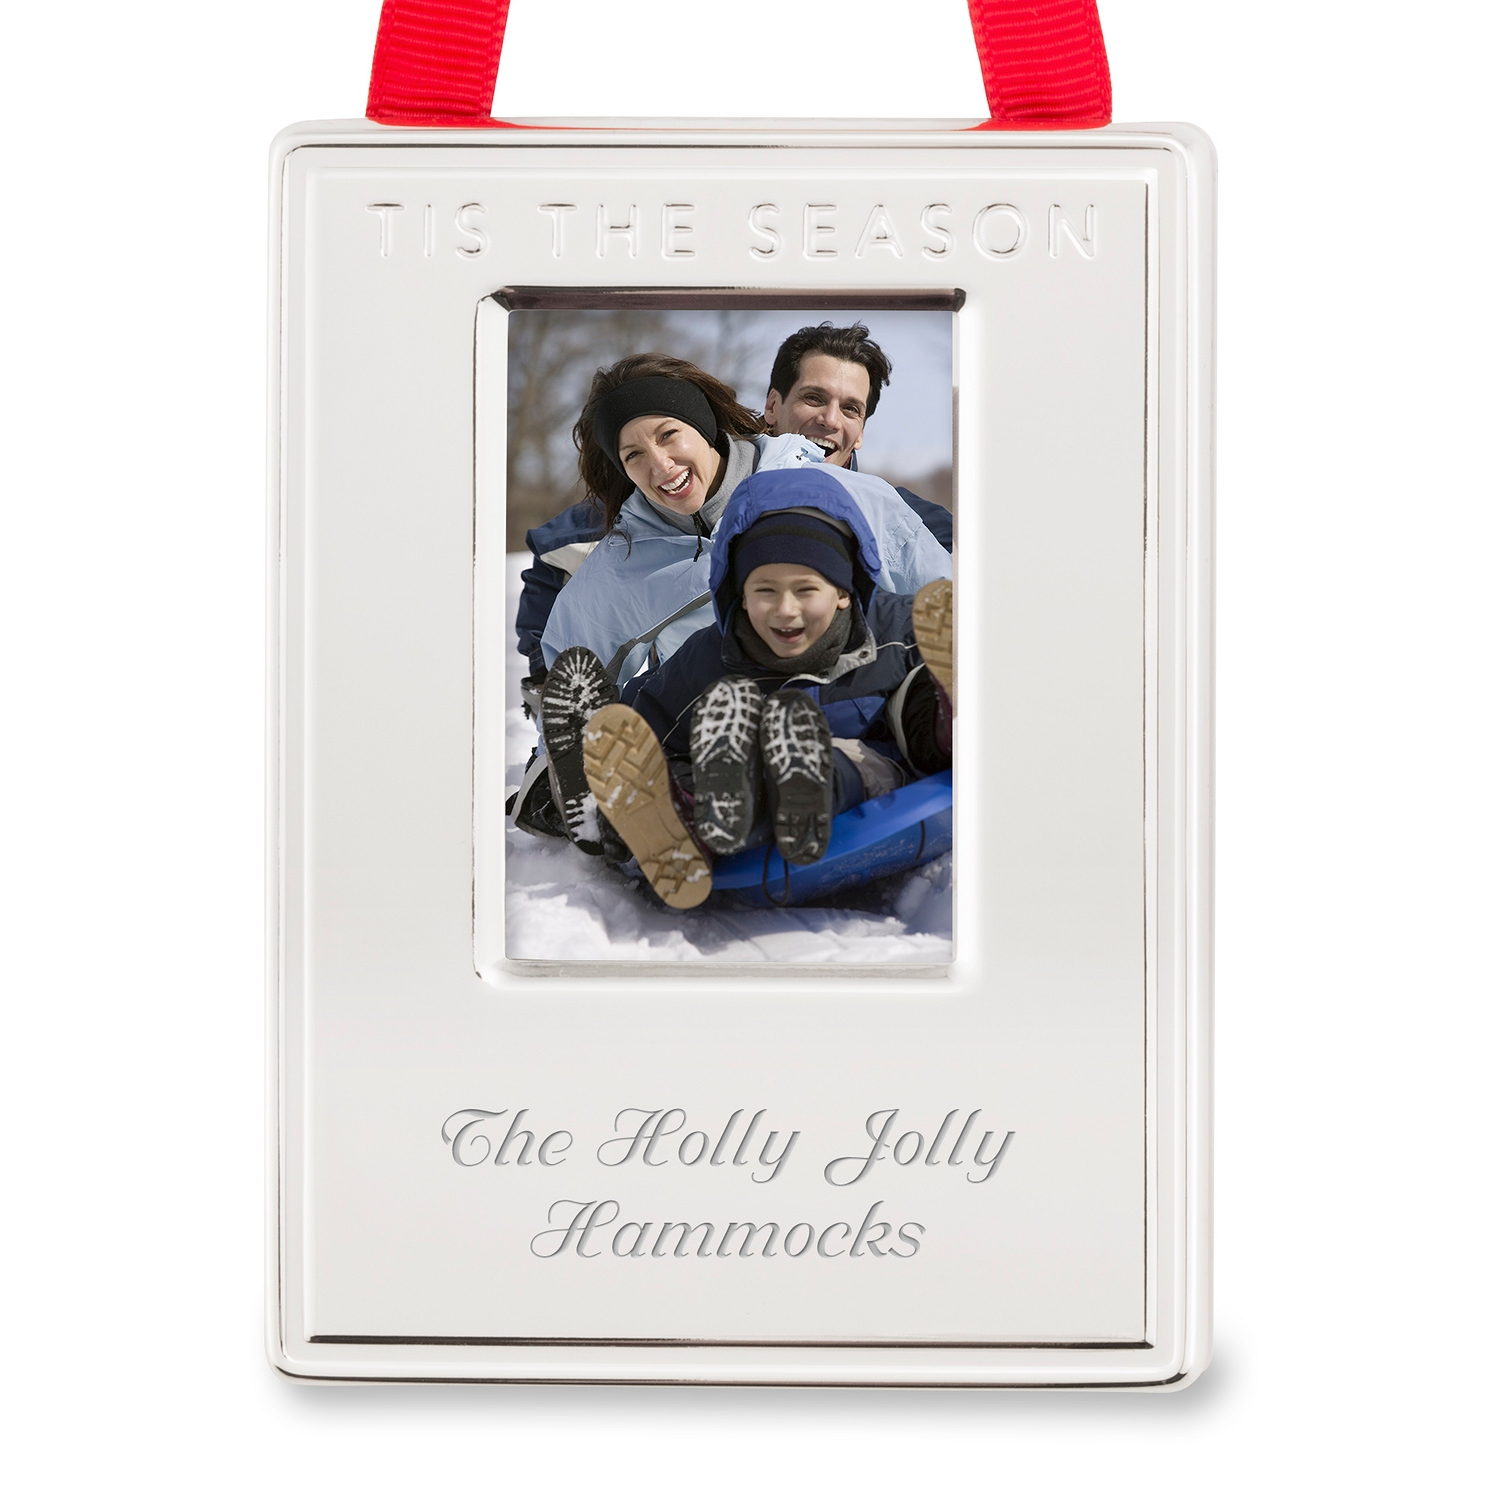 Silver Tis the Season Frame Ornament